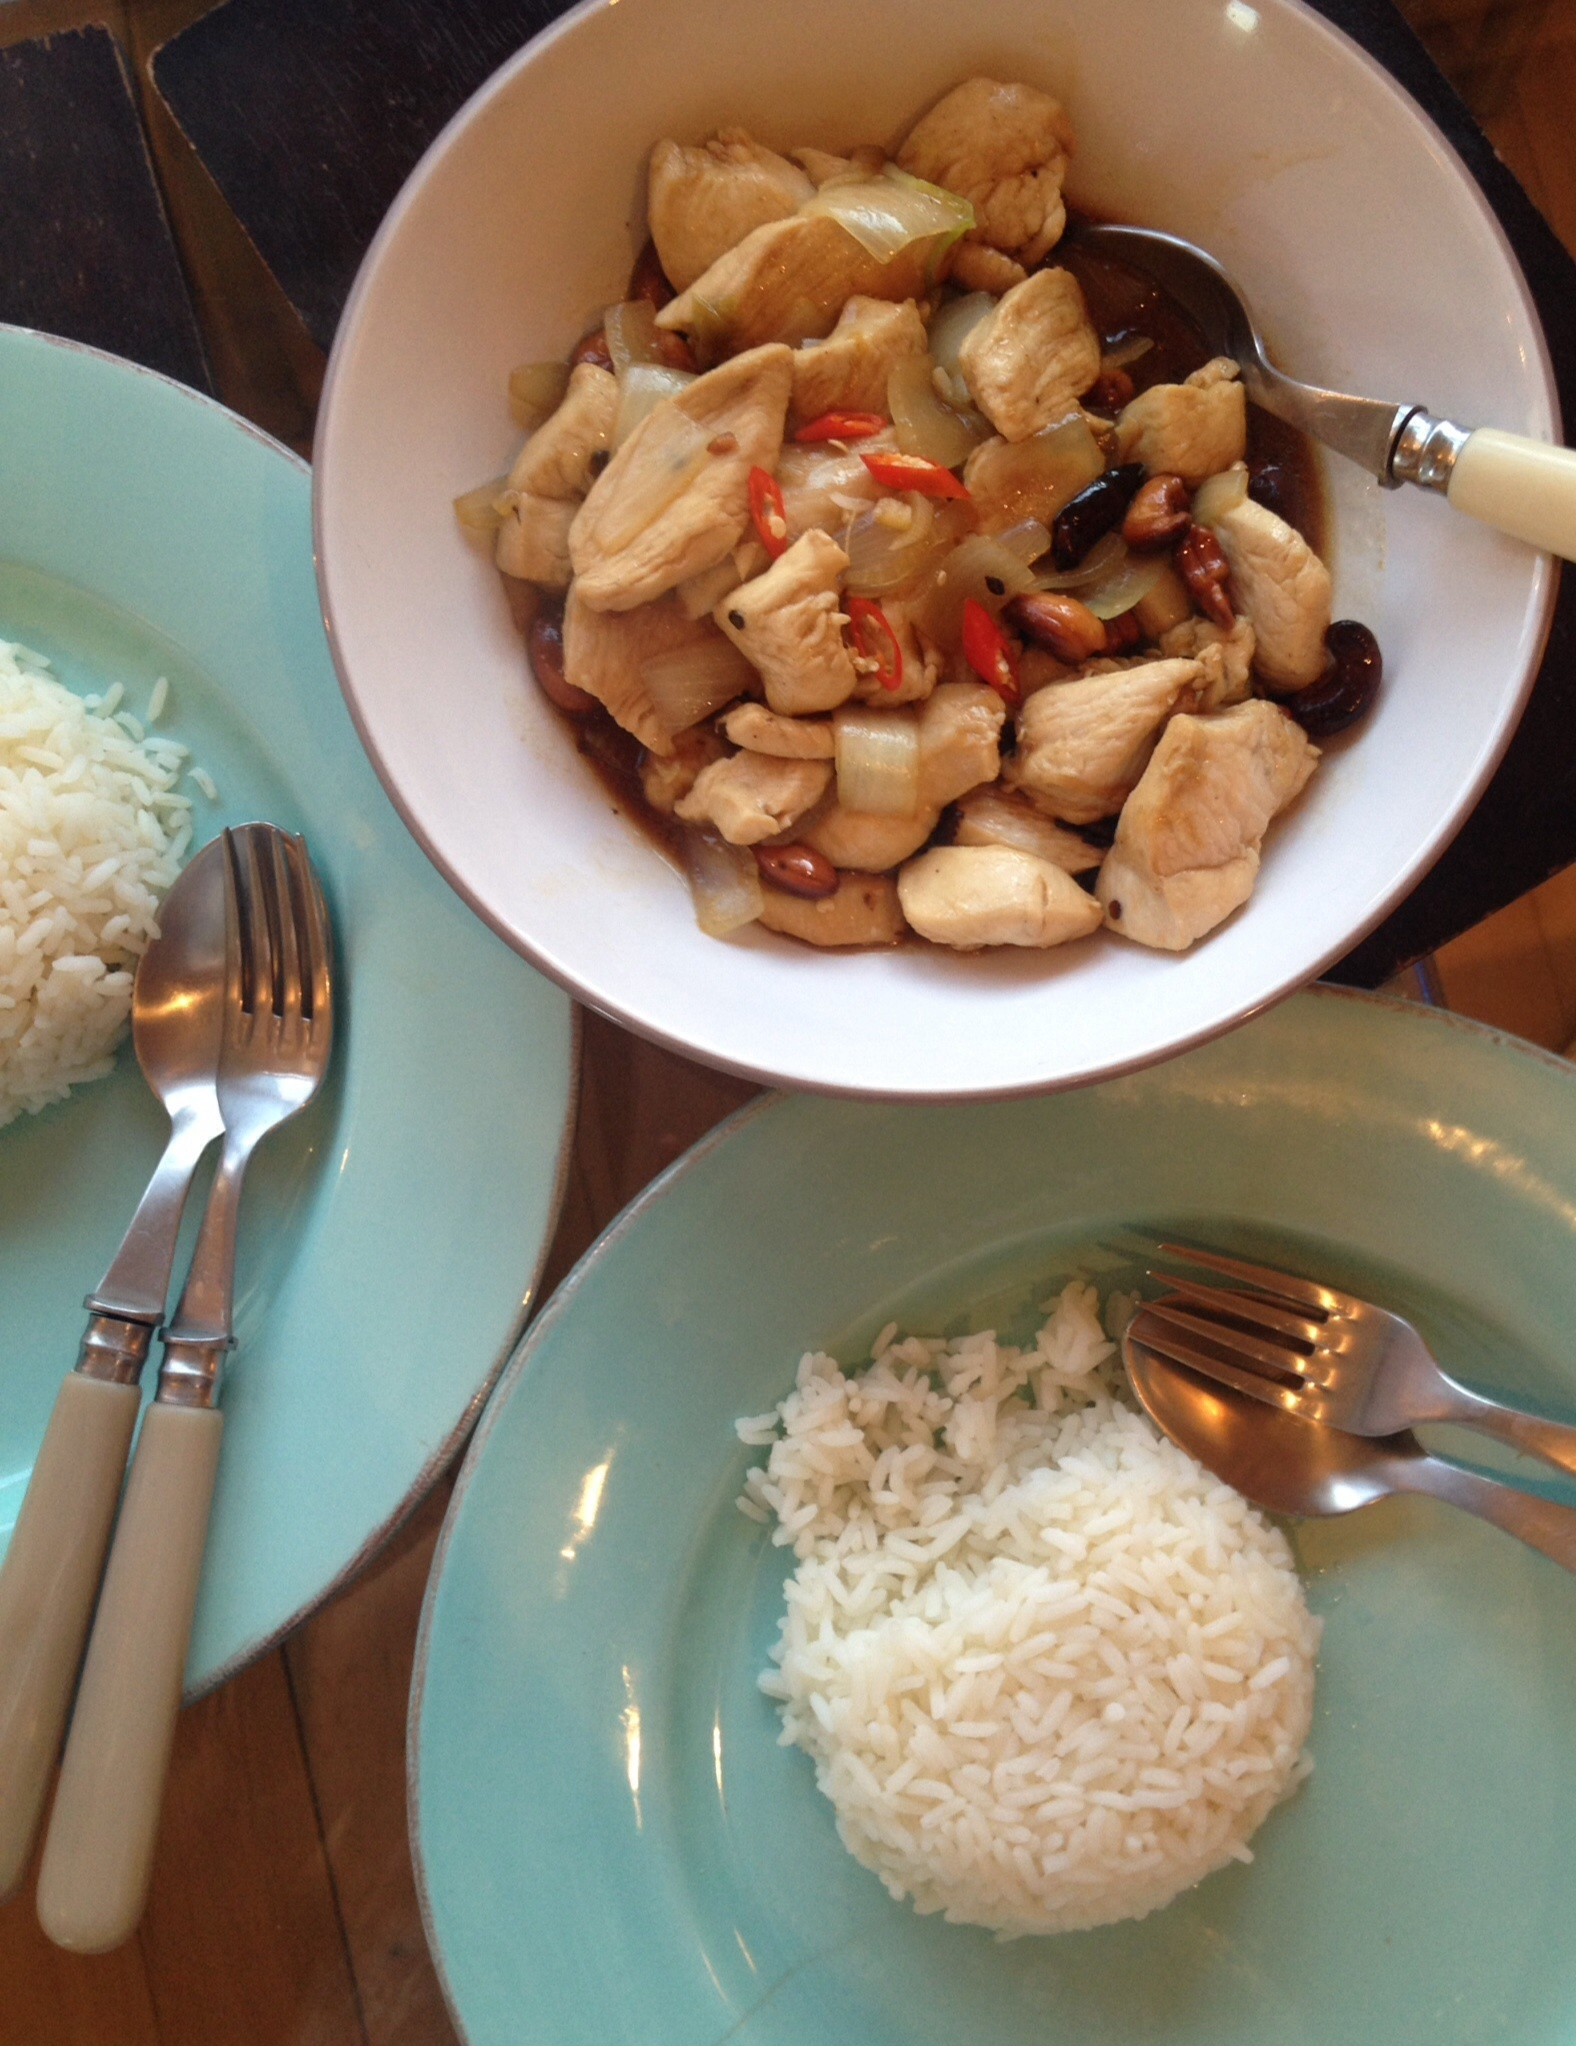 Gai pad med mamuang – stir fried chicken with cashew nuts